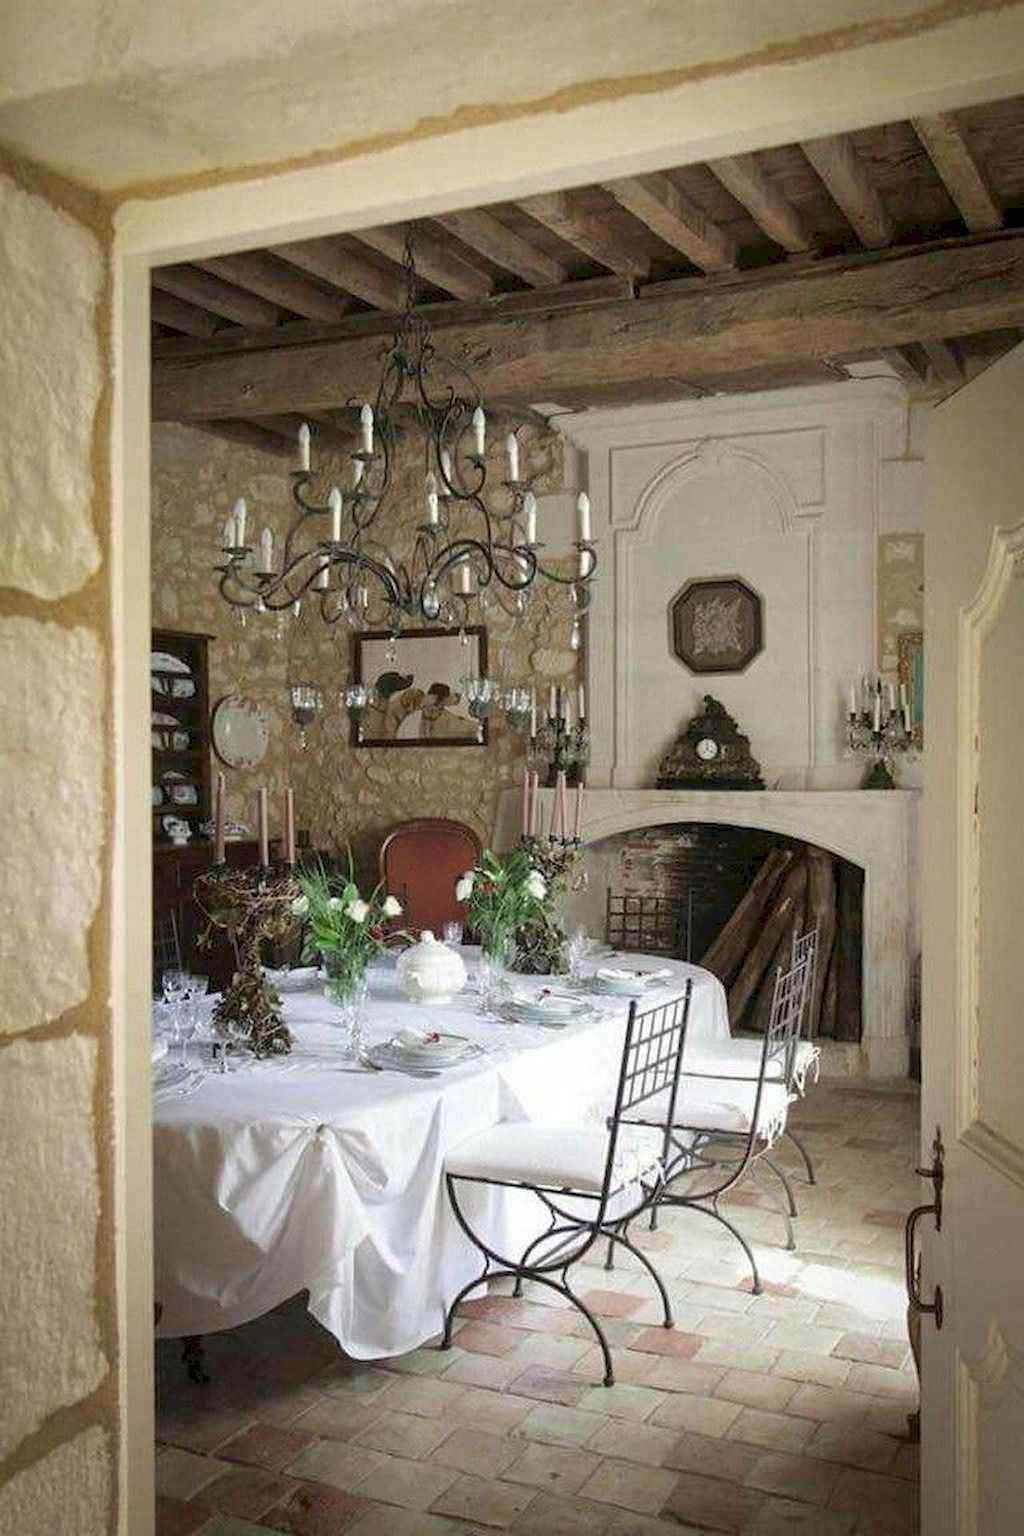 22 Beautiful French Country Dining Room Decor Ideas Frontbackhome French Country Decorating Kitchen Country House Decor French Country Dining Room Decor